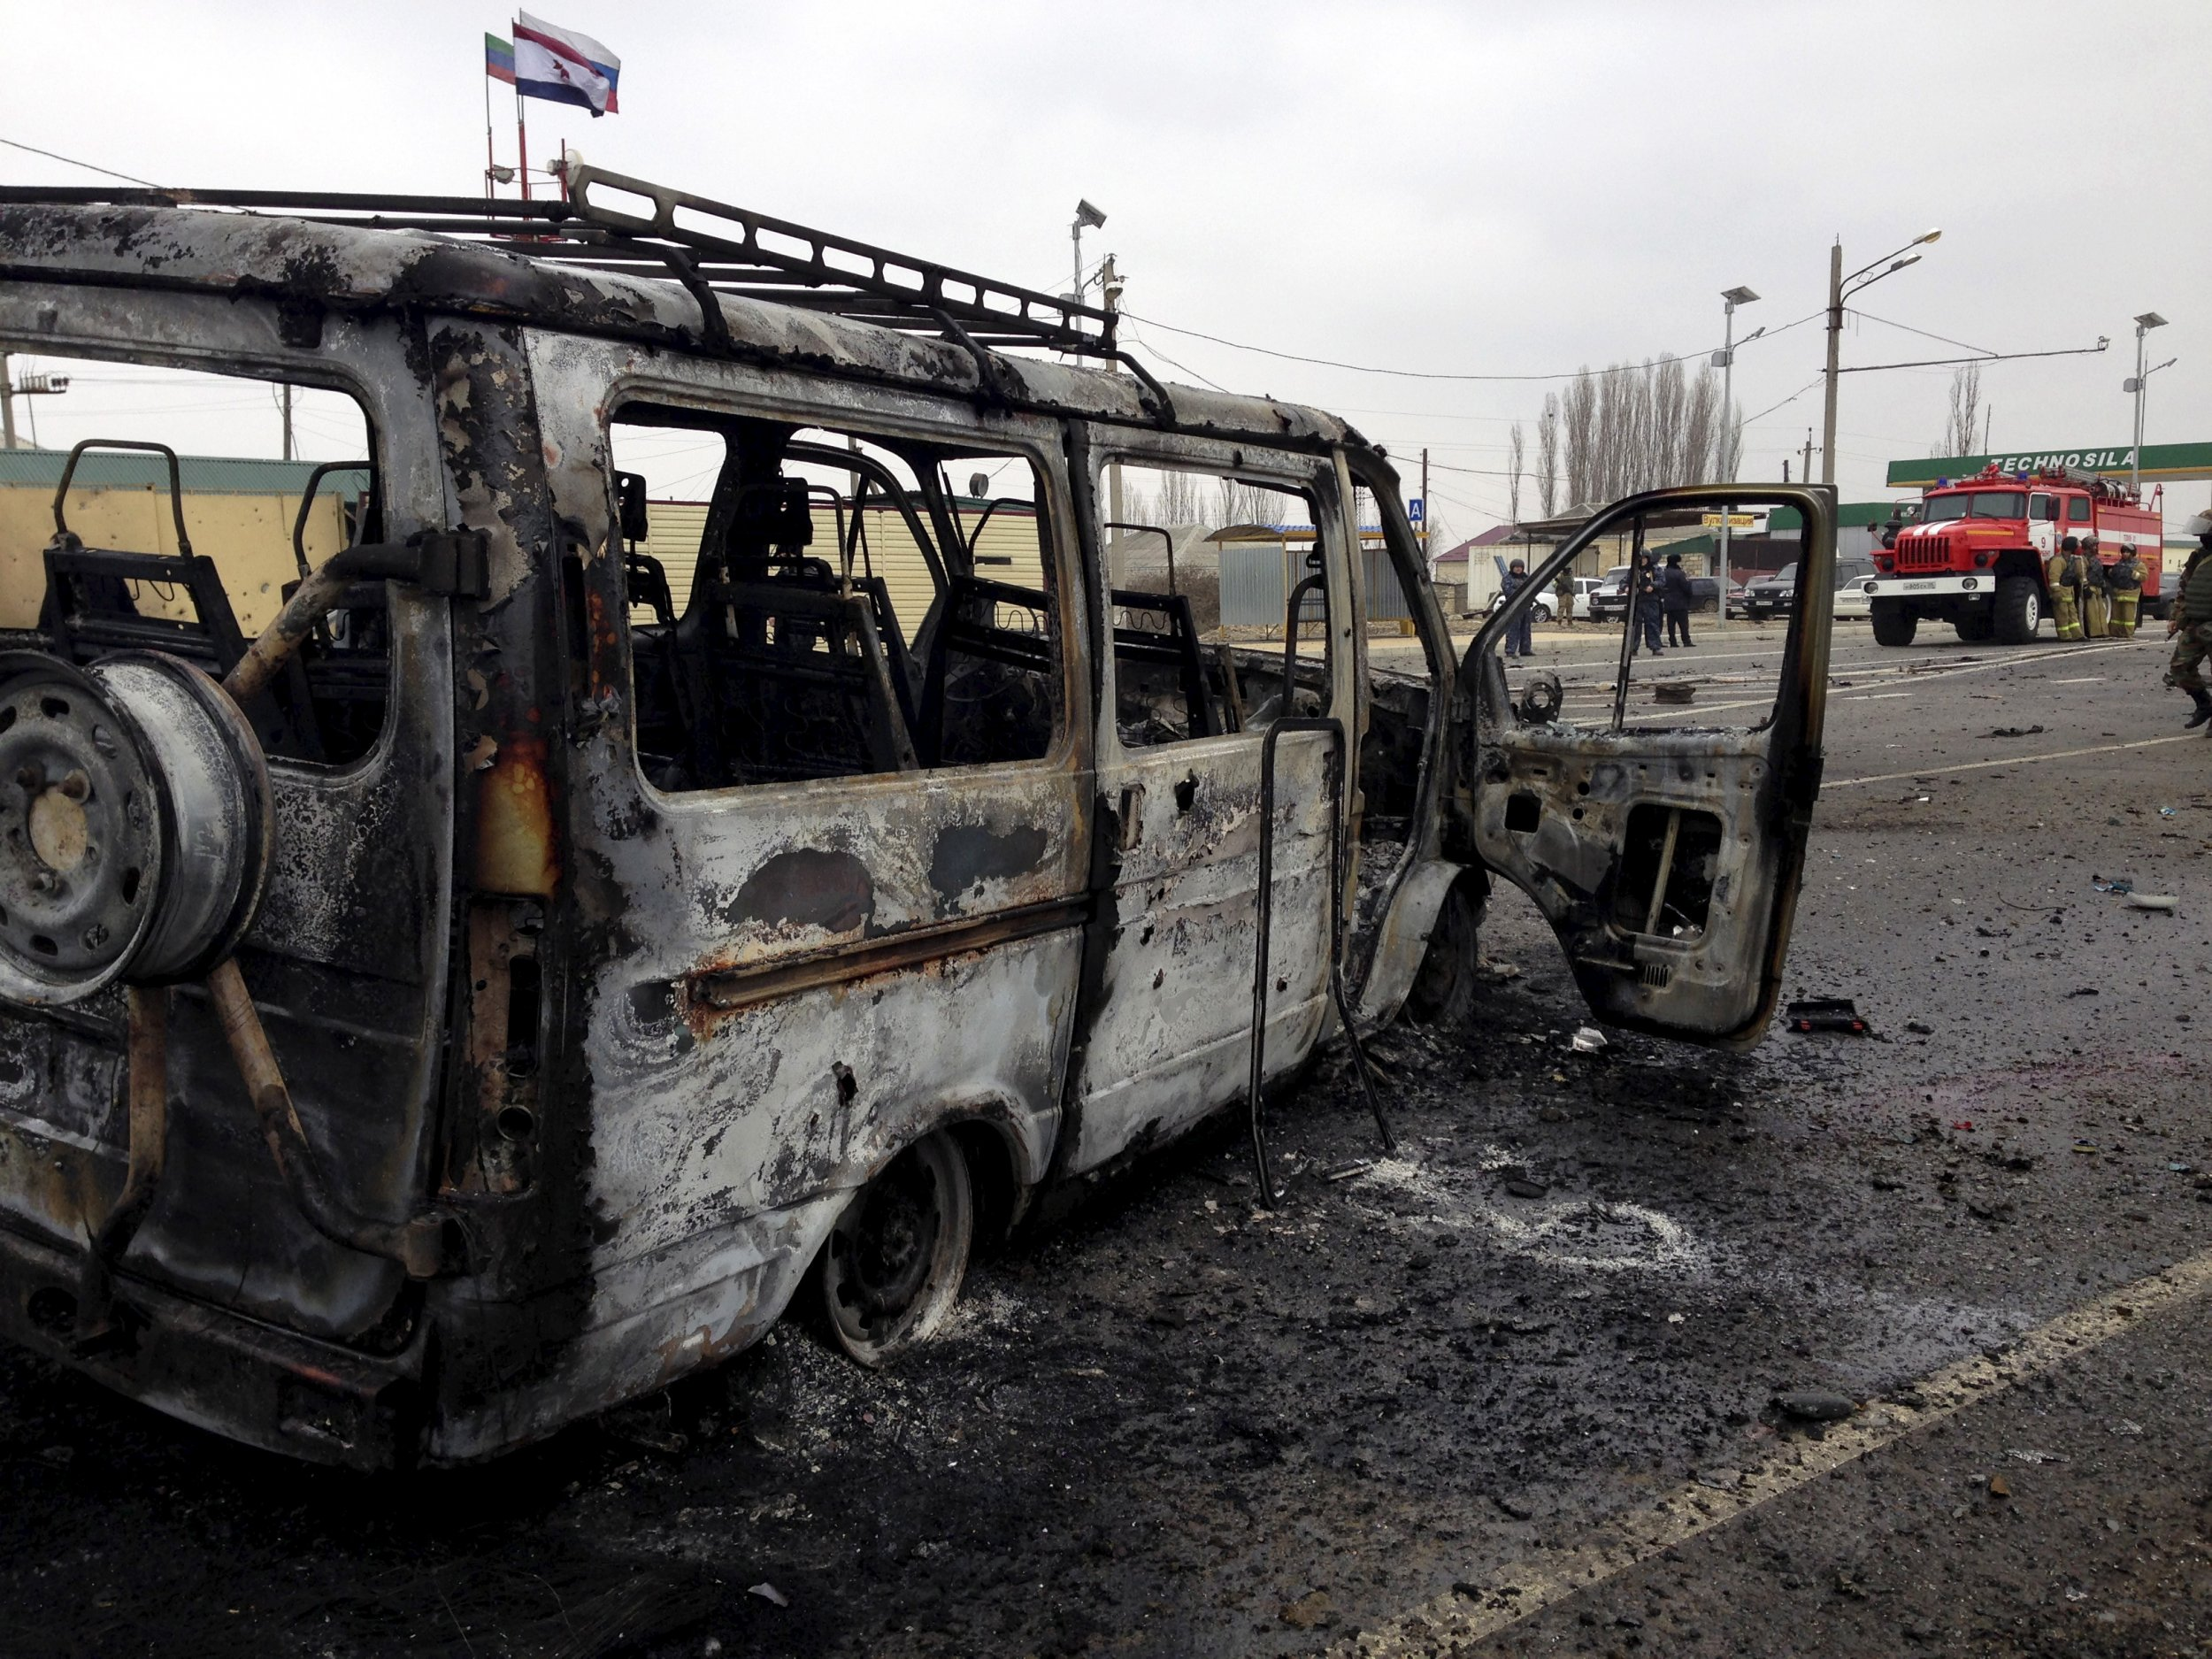 Burnt car in Russia's Dagestan region